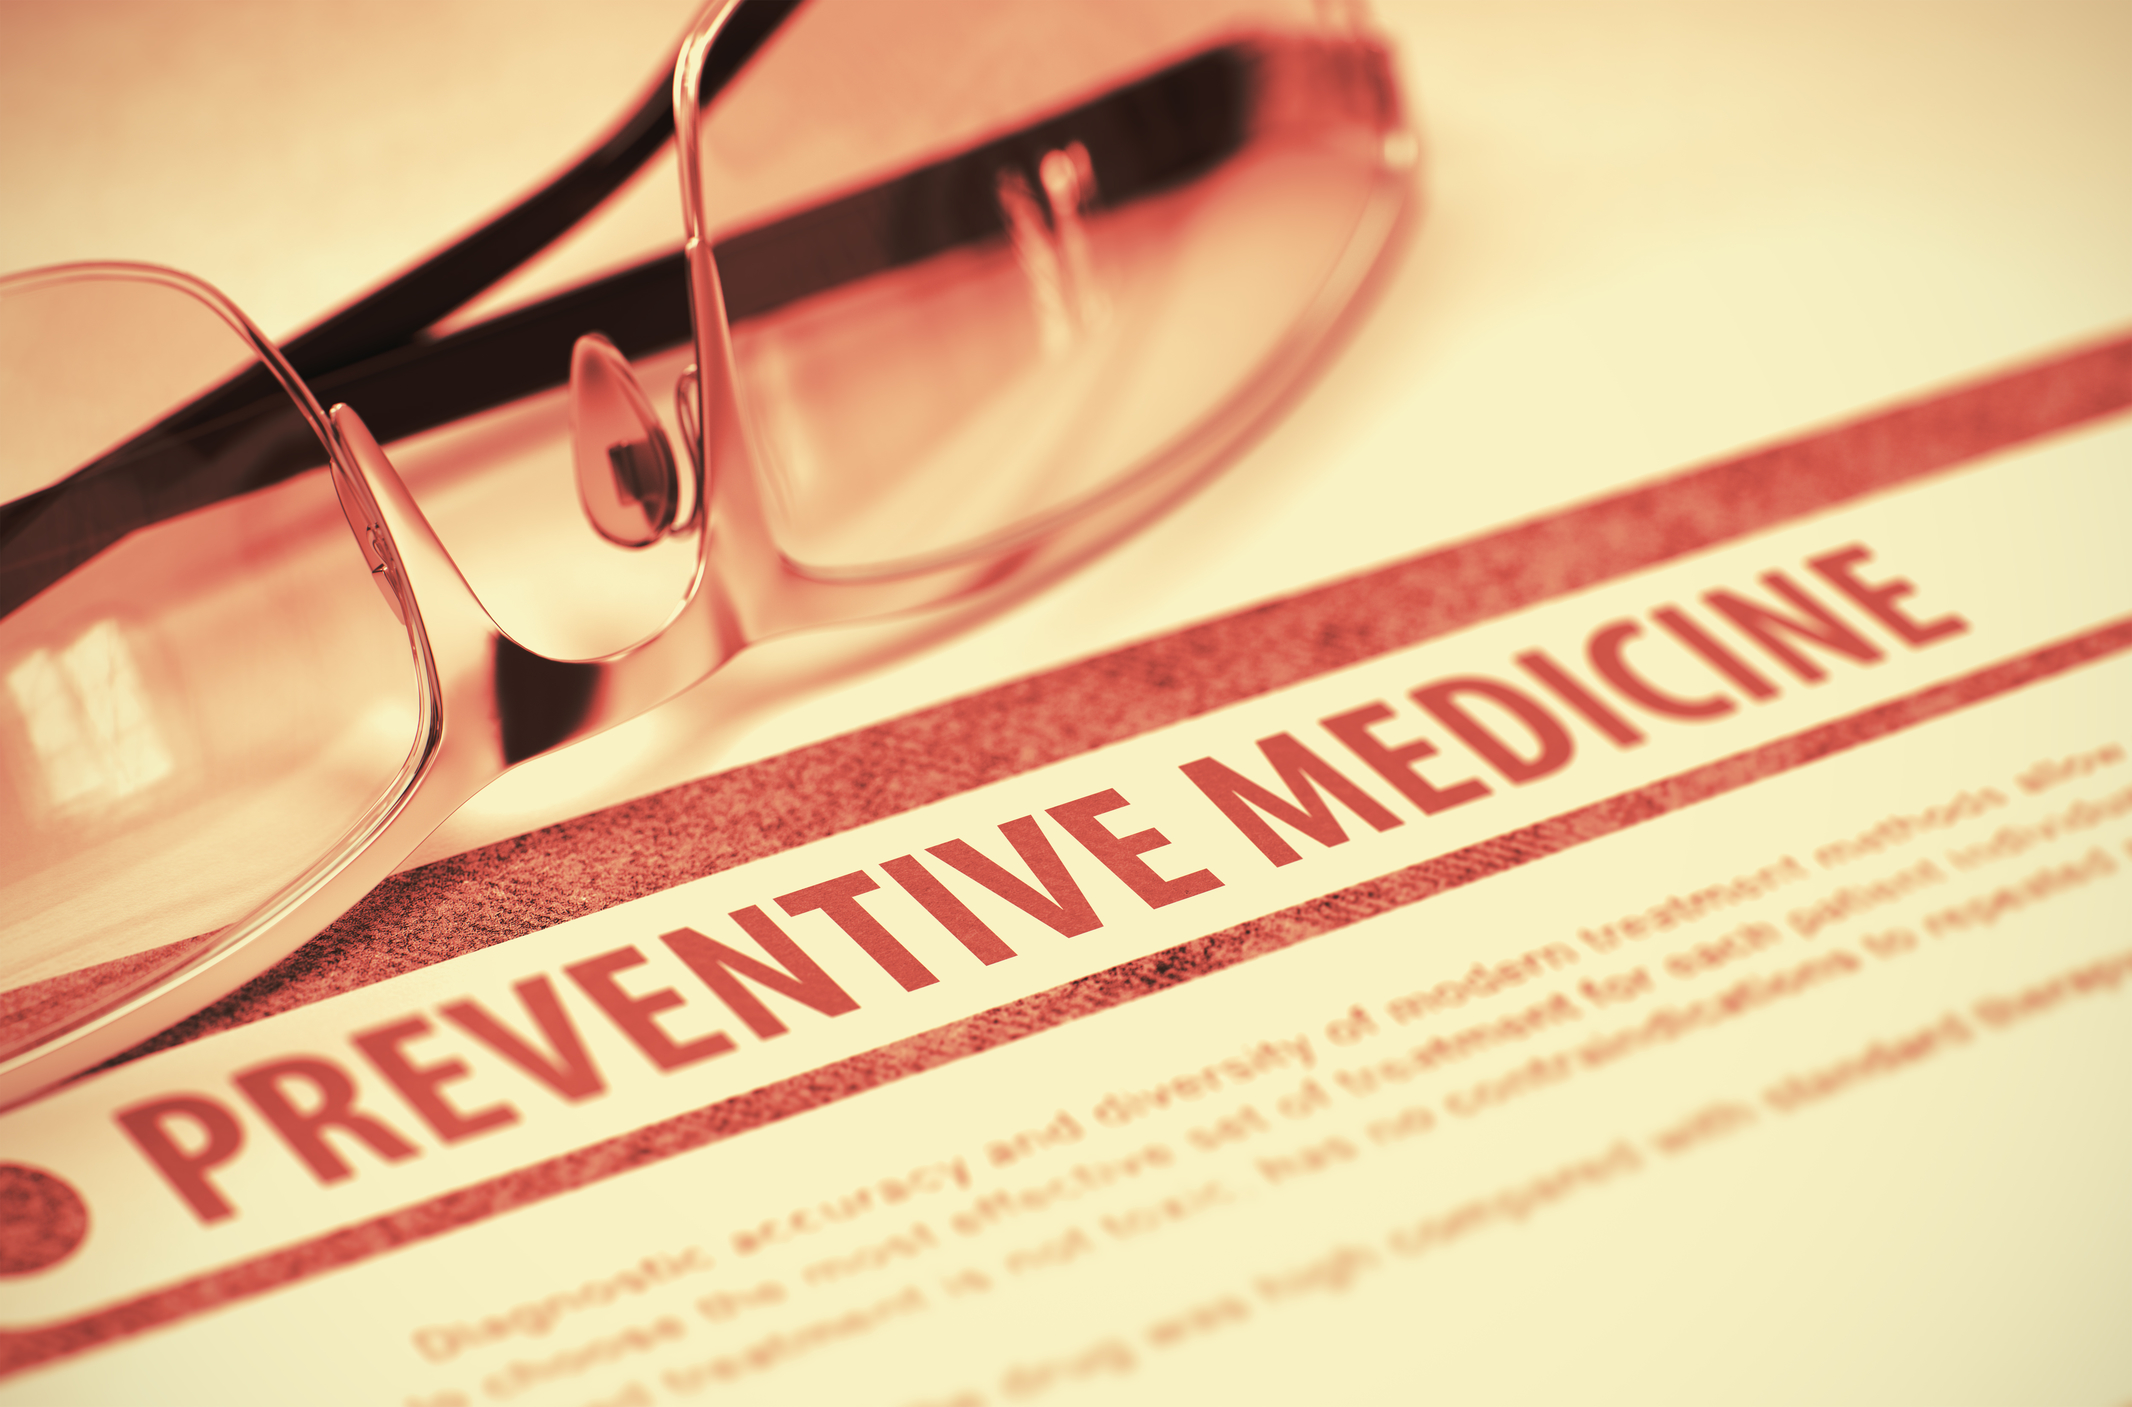 Try Your Hand at These 4 Preventive Medicine MOC Practice Questions